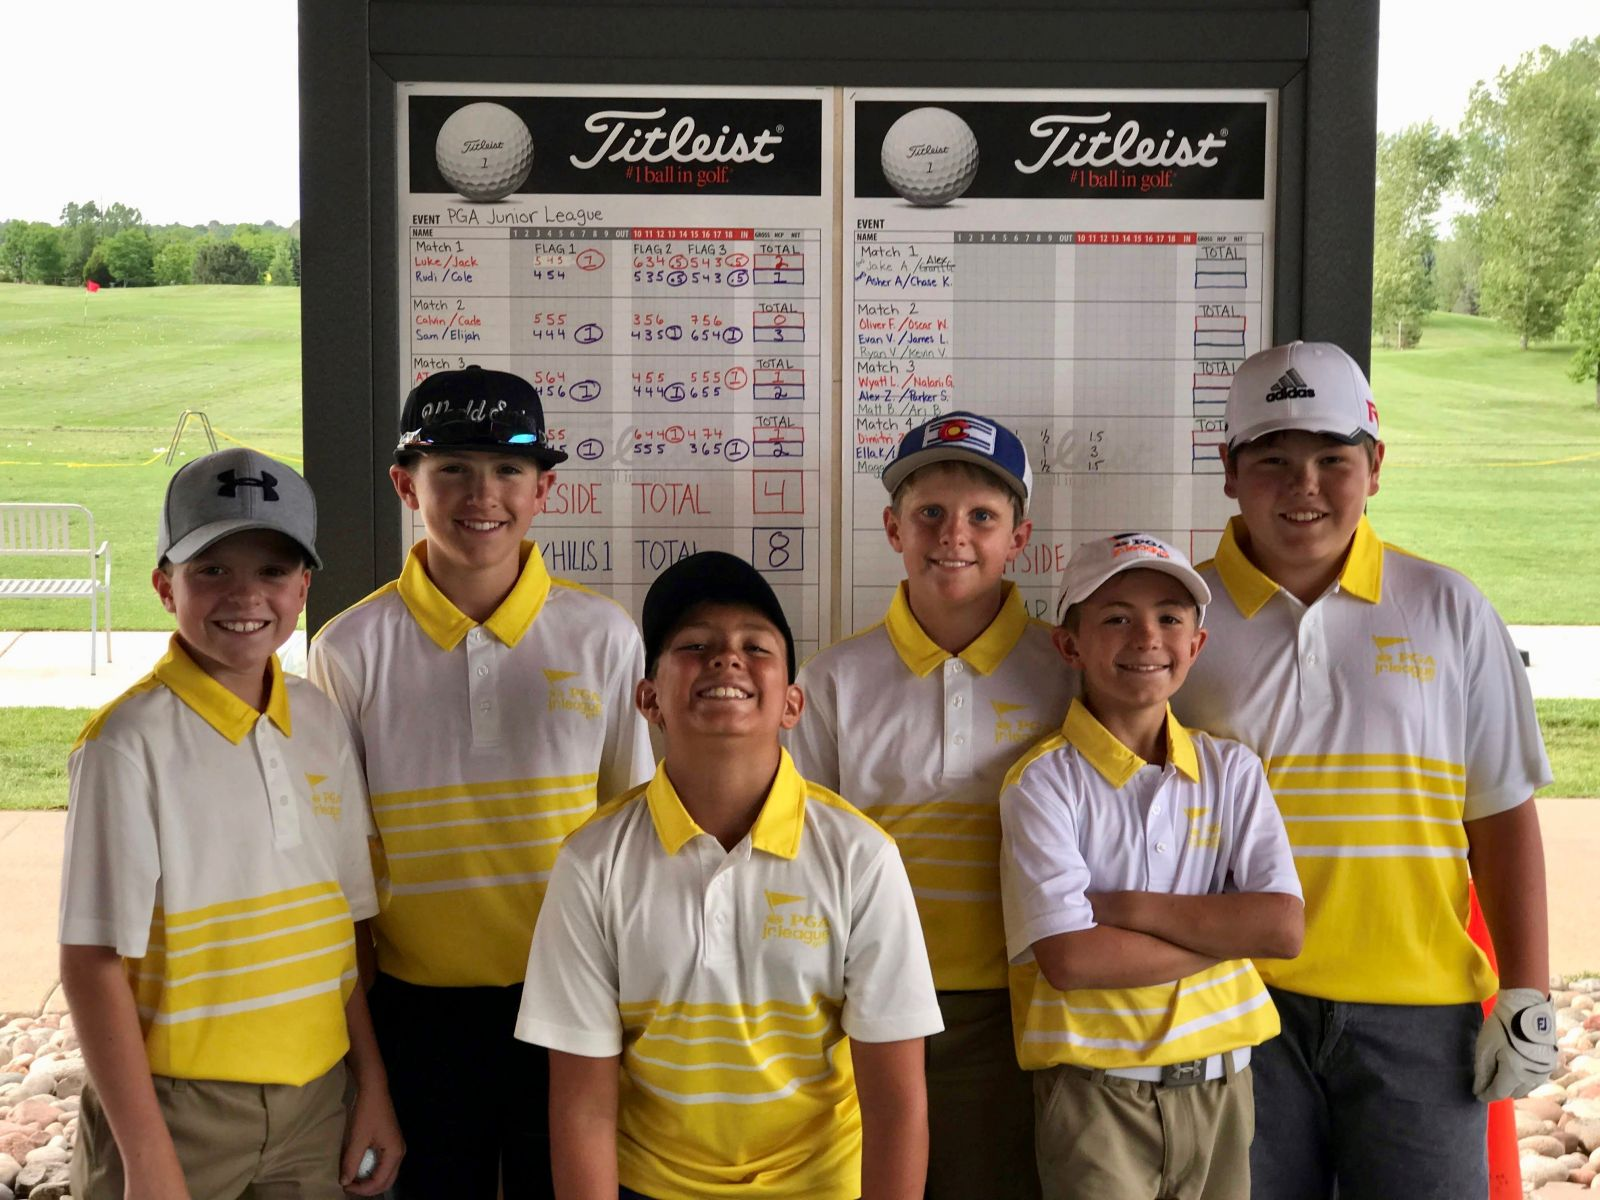 A PGA Junior Golf Team poses for a picture at The Fox Hill Club